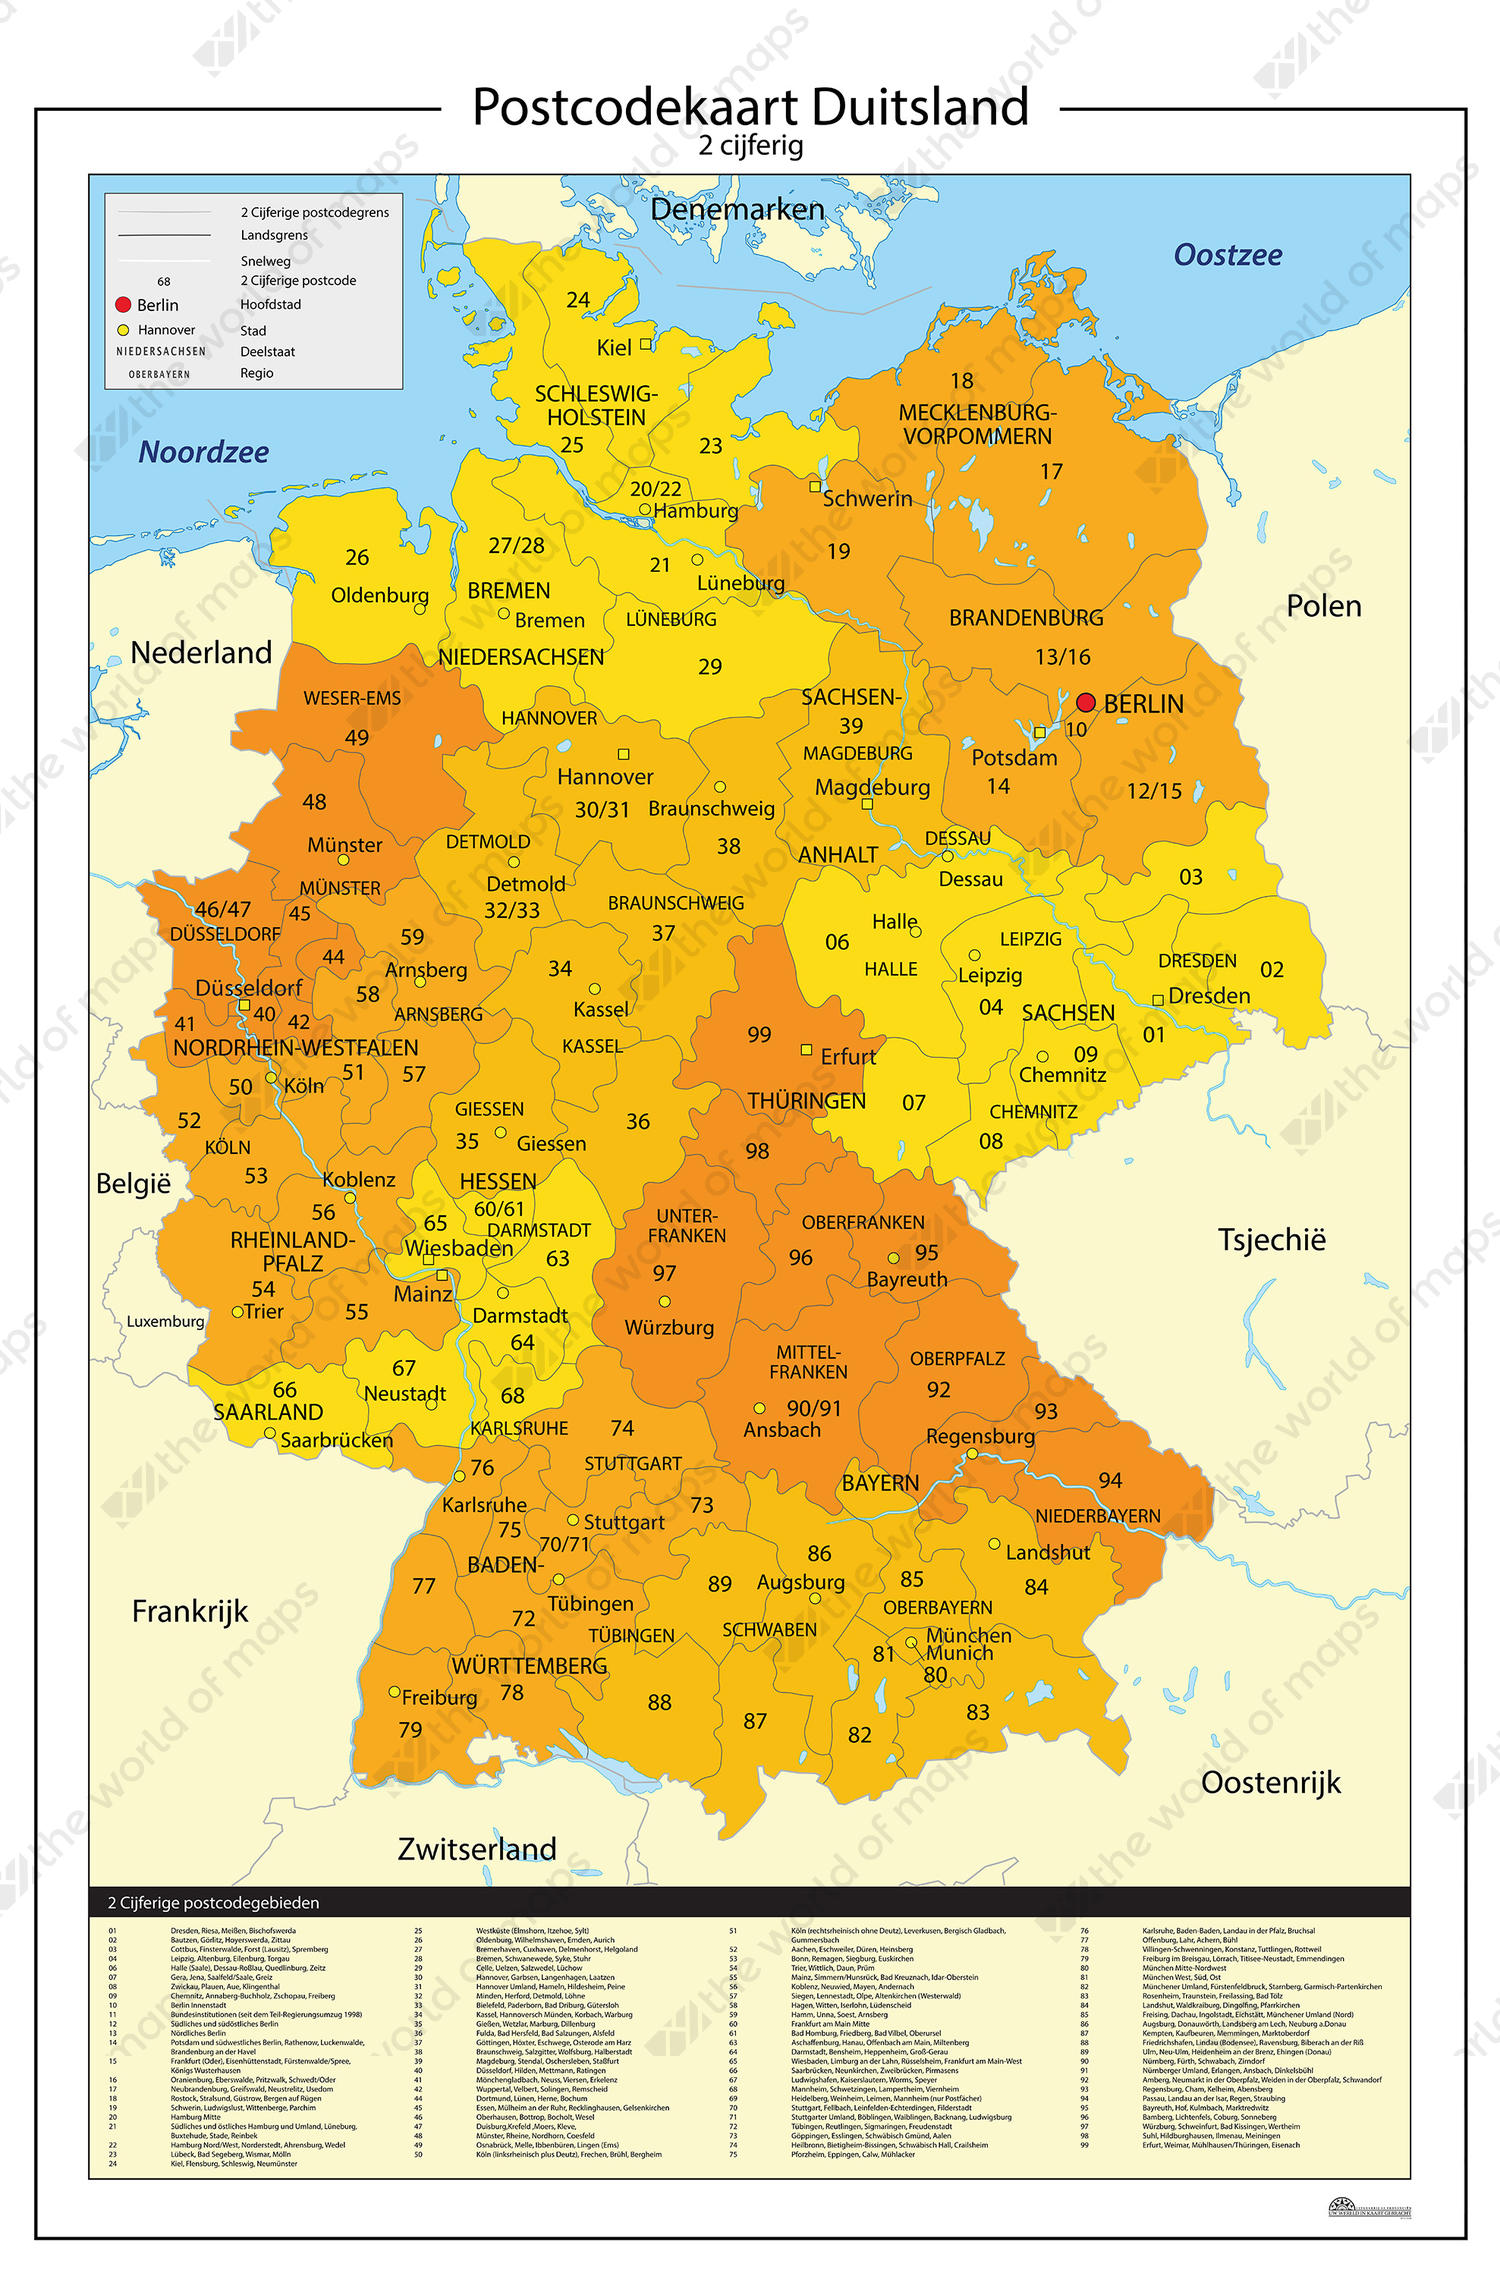 photo about Printable Maps of Germany titled Electronic postcode map of Germany 2-digit 814 The Planet of